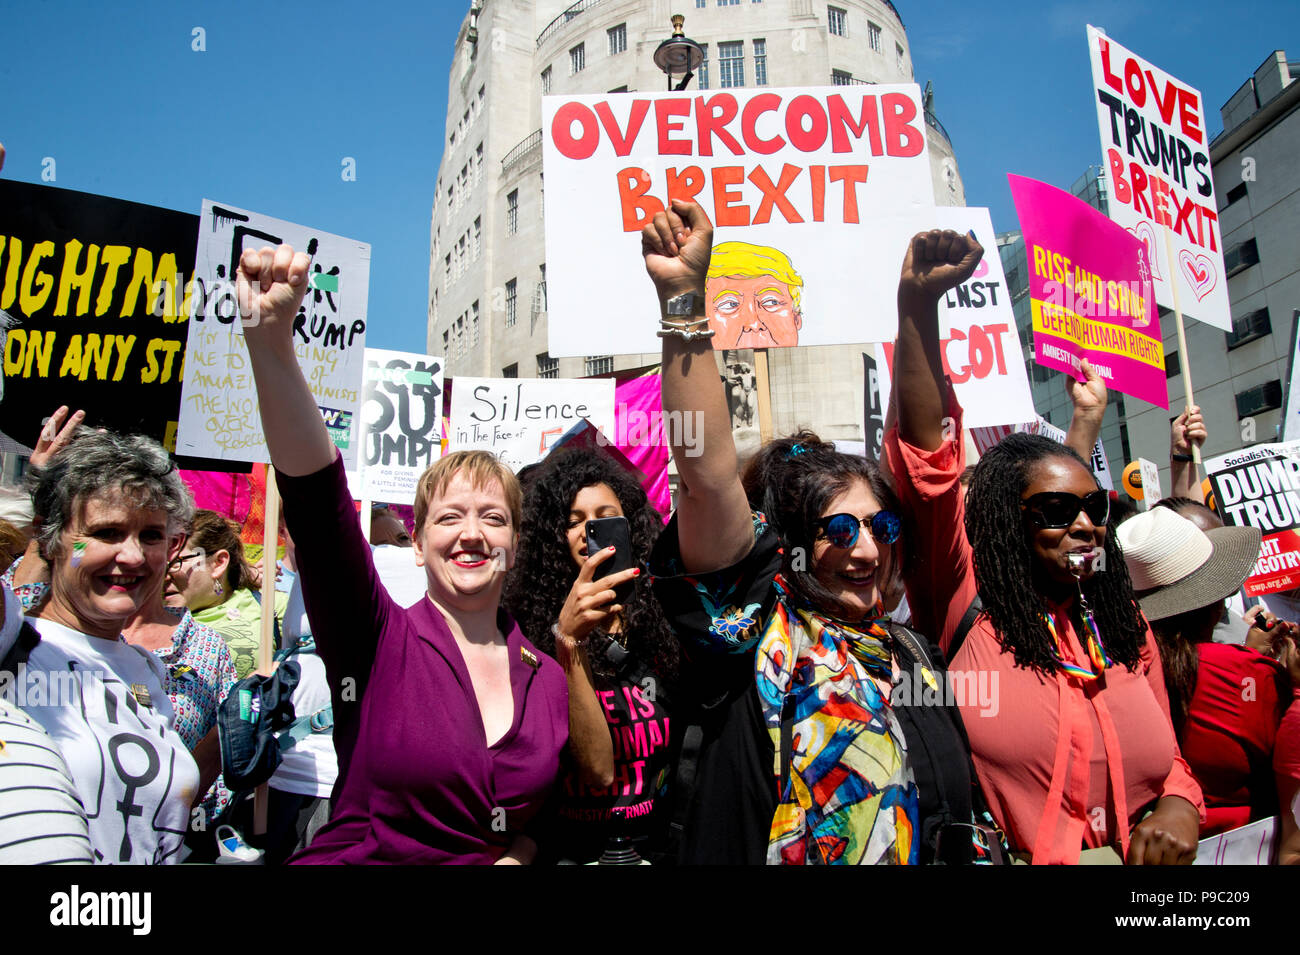 July 13th 2018.Central London. Demonstration against the visit of US President Donald Trump to England. A group of women lead the first march. - Stock Image